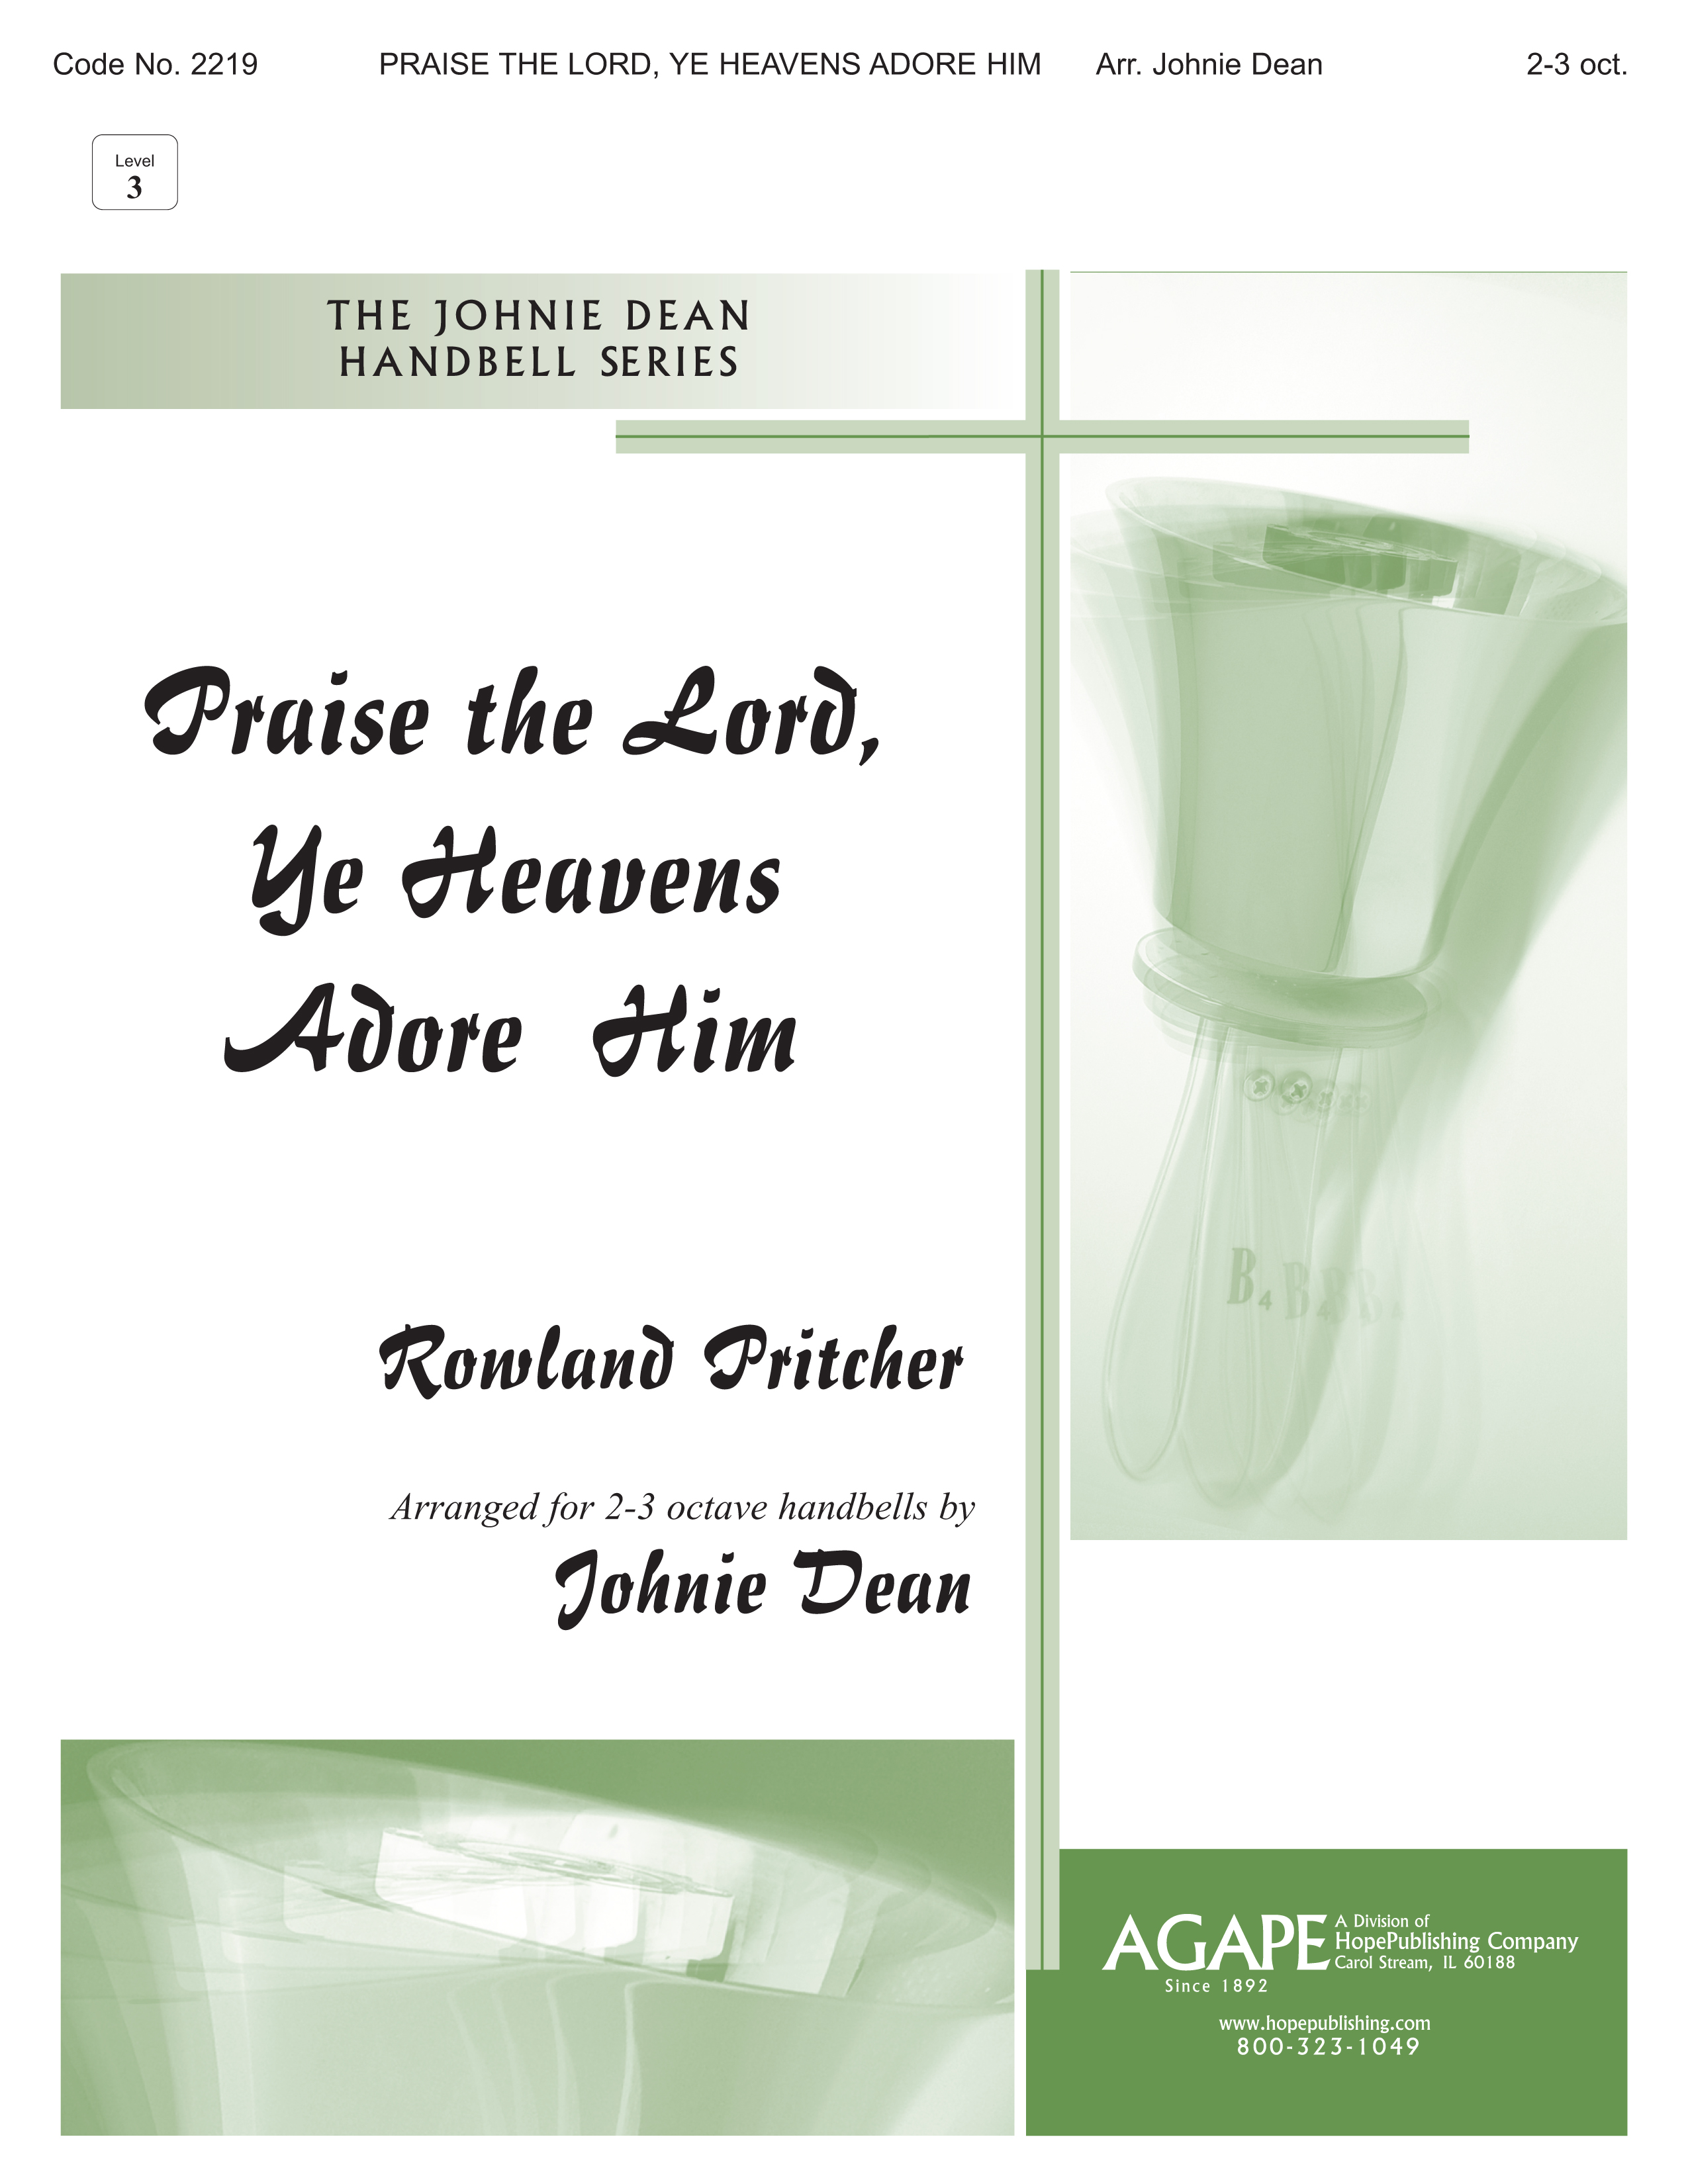 Praise the Lord Ye Heavens Adore Him - 2-3 Octave Cover Image